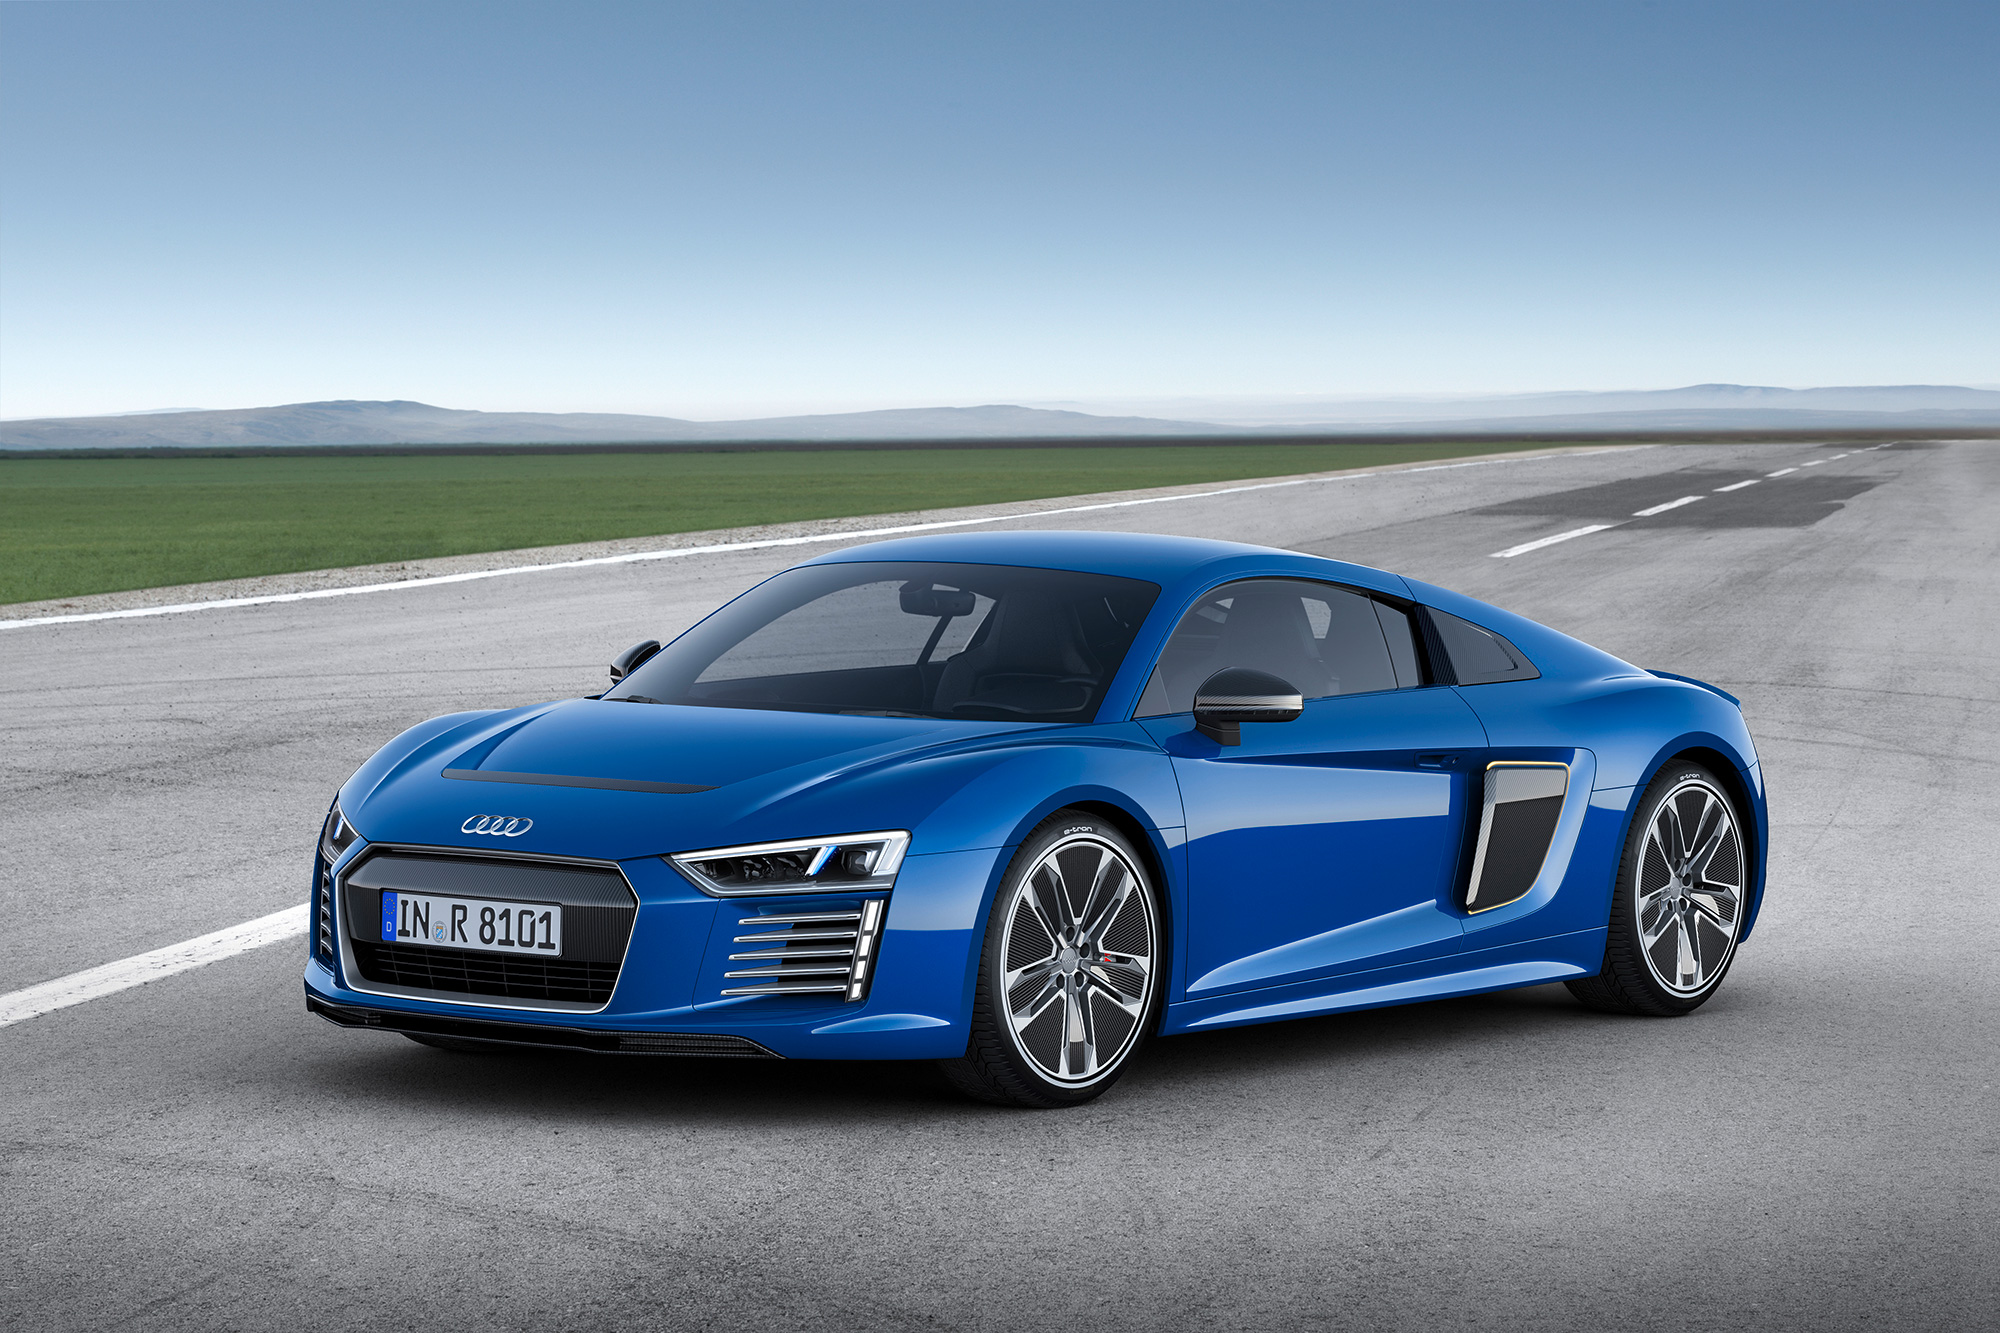 audi r8 2015 hd wallpapers free download. Black Bedroom Furniture Sets. Home Design Ideas